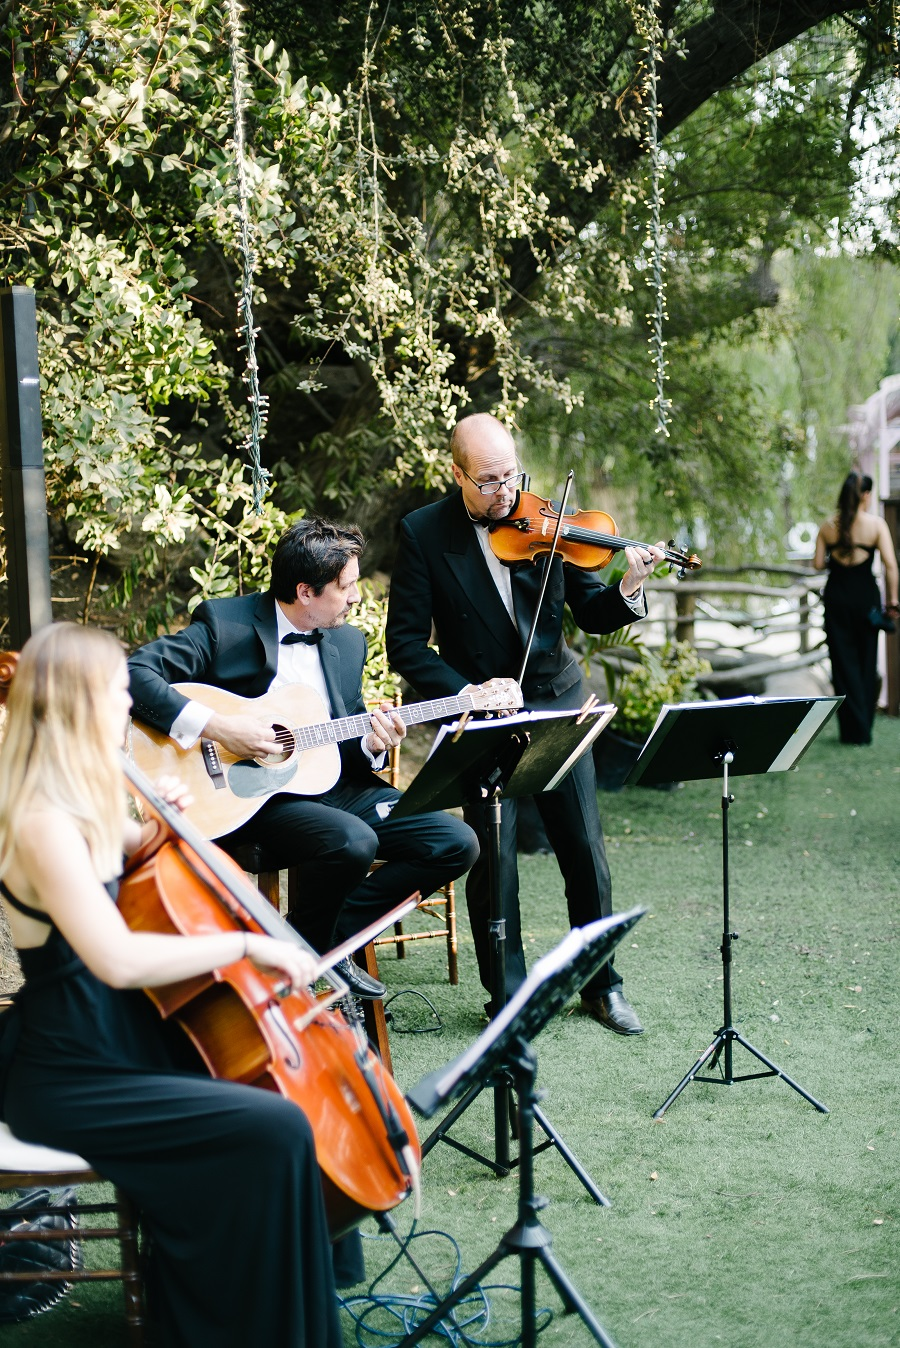 vibrantly hued wedding, calamigos ranch, bluebell events, john schnack photography, CJ Matsumoto & Sons, the lighter side